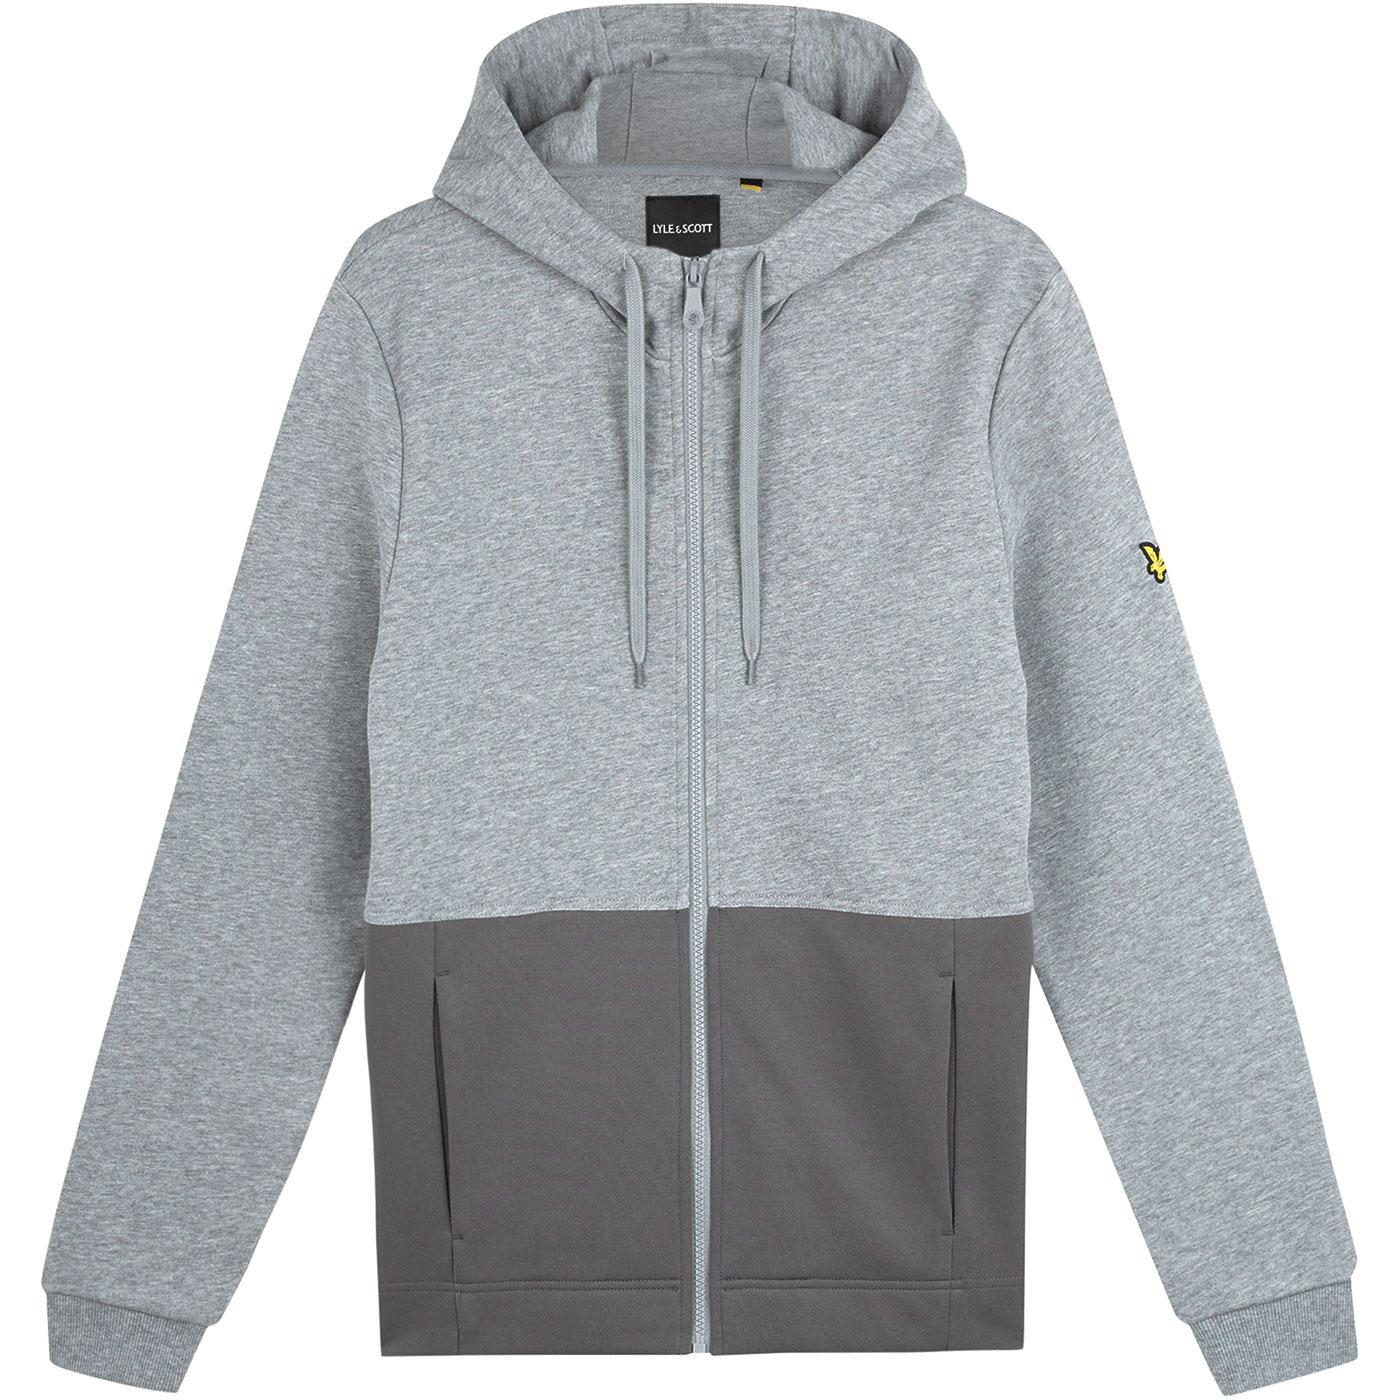 LYLE & SCOTT Casuals Zip Through Hooded Top (MGM)